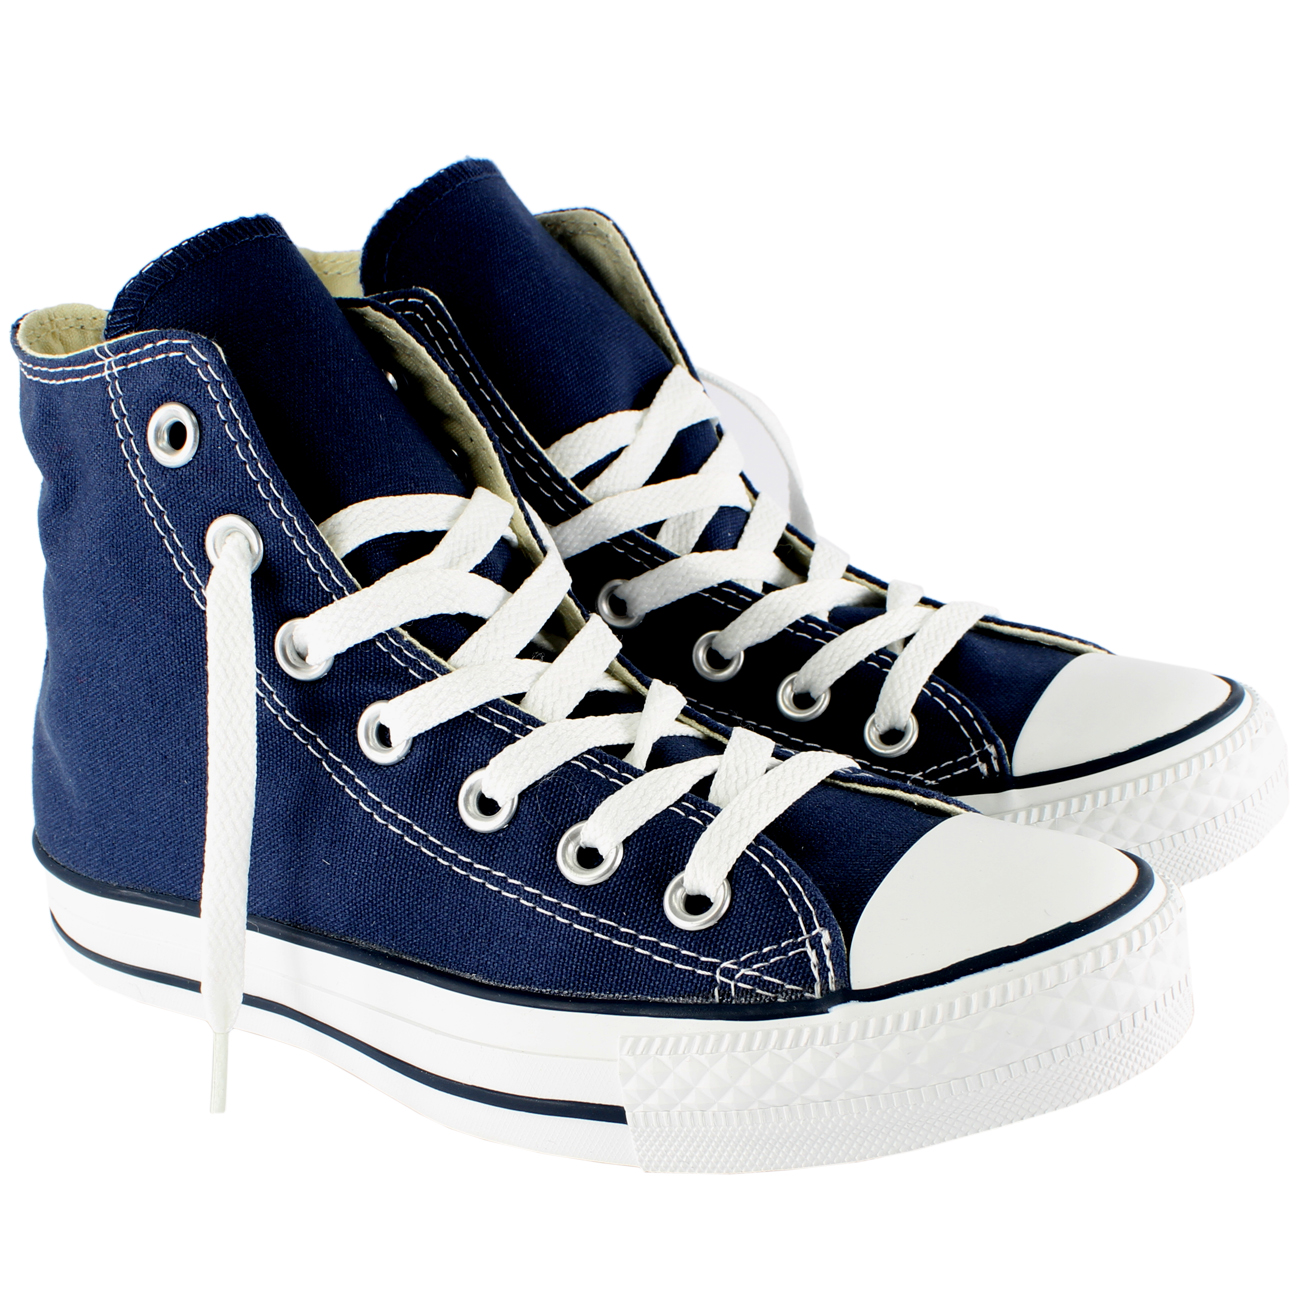 navy blue converse womens